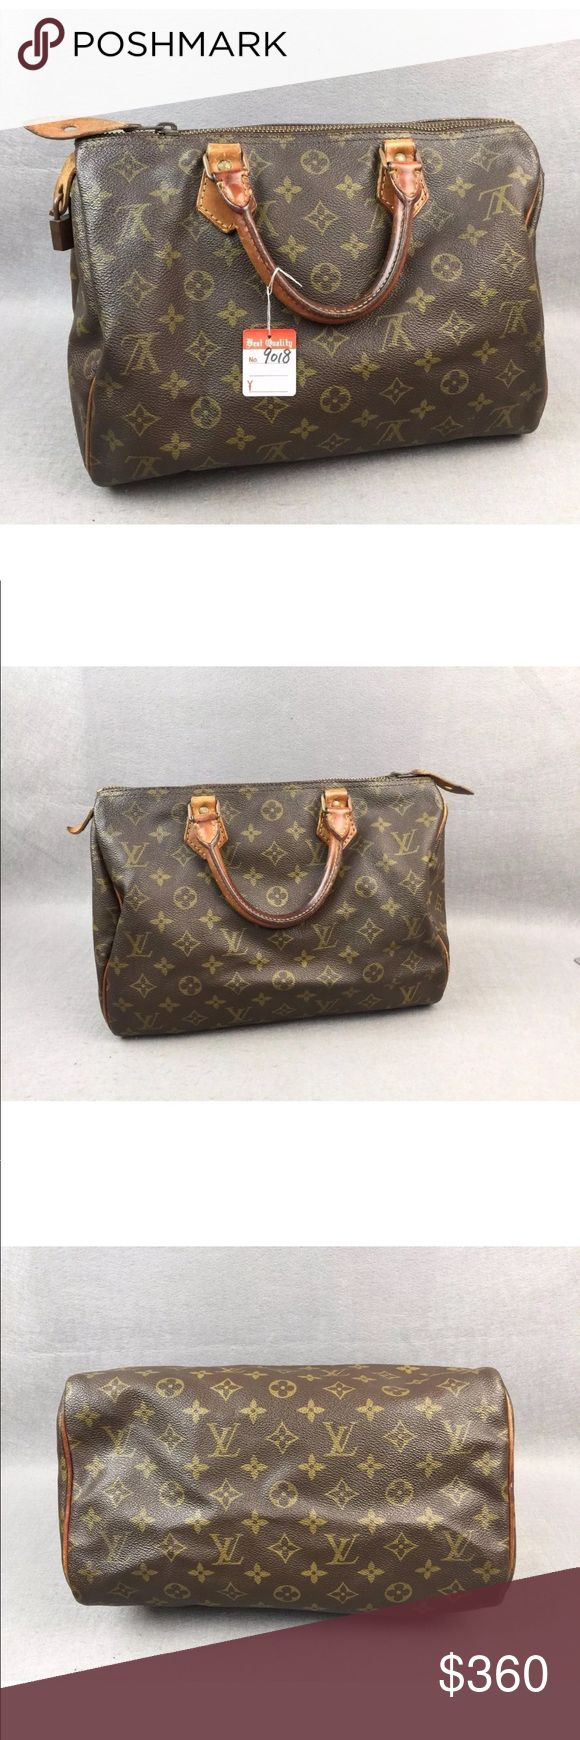 Authentic Louis Vuitton Speedy 30 Satchel Vintage Authentic Louis Vuitton speedy 30. Good condition, some hardware tarnished, leather aging, stains inside. Comes with padlock, no key. Date code SA823. Louis Vuitton Bags Satchels